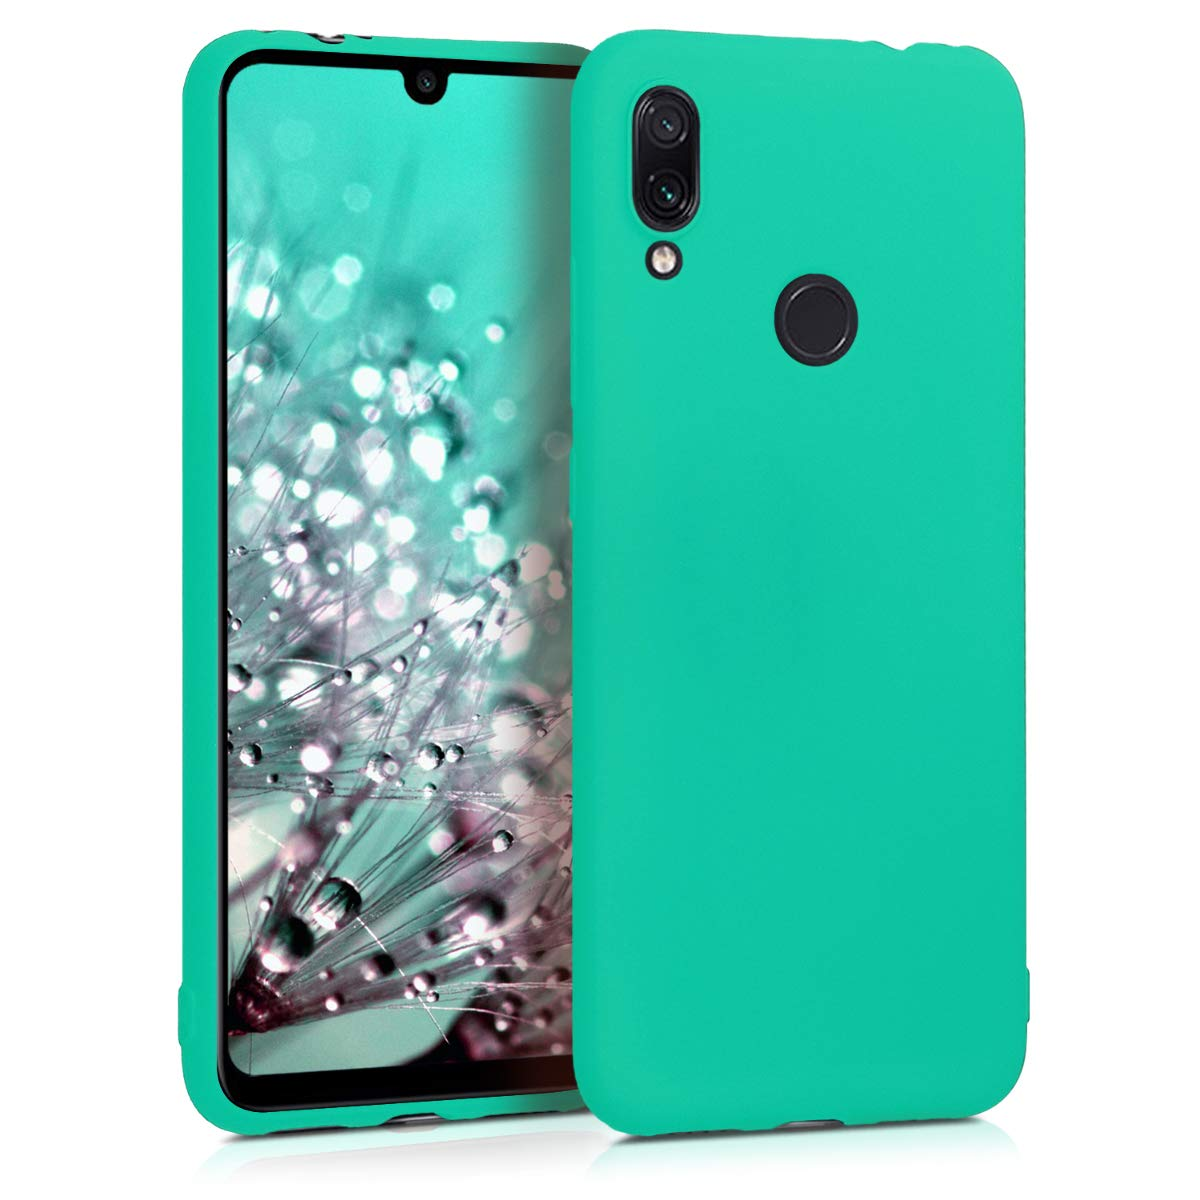 kwmobile TPU Silicone Case for Xiaomi Redmi Note 7 / Note 7 Pro - Soft Flexible Shock Absorbent Protective Phone Cover - Neon Turquoise